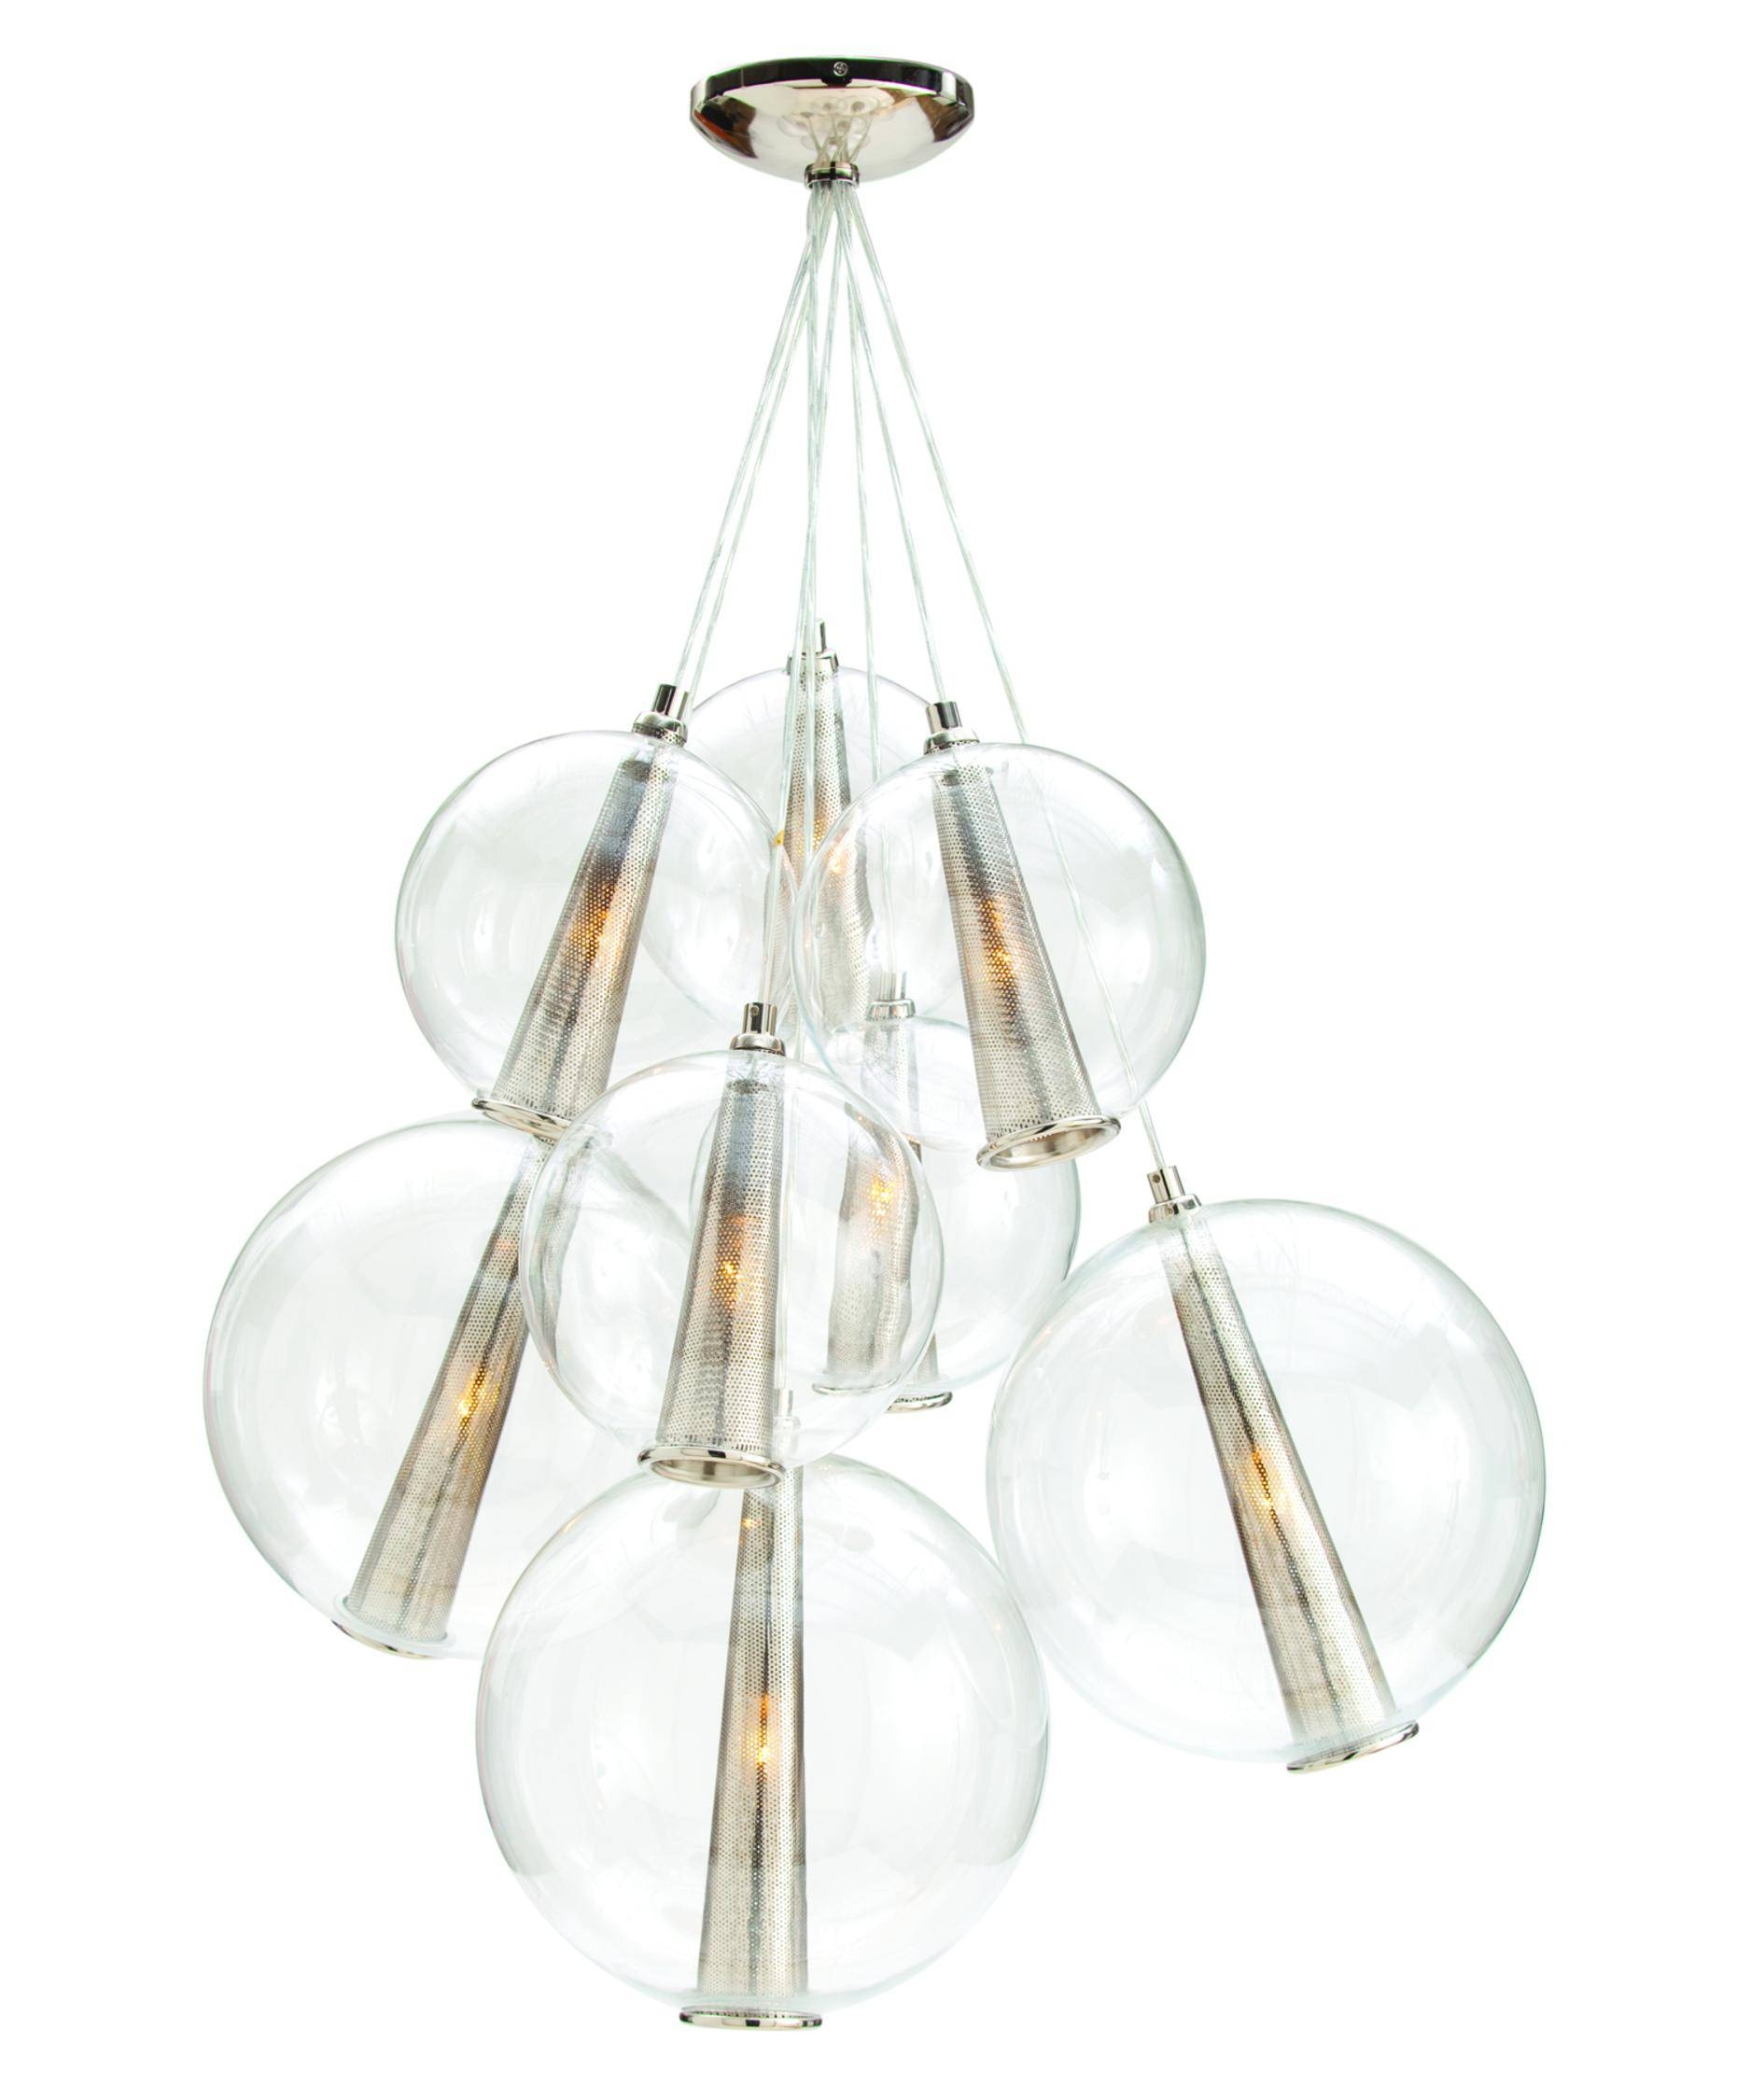 Arteriors Home Dk89900 Caviar 29 Inch Wide 1 Light Multi Pendant throughout Caviar Pendant Lights (Image 5 of 15)